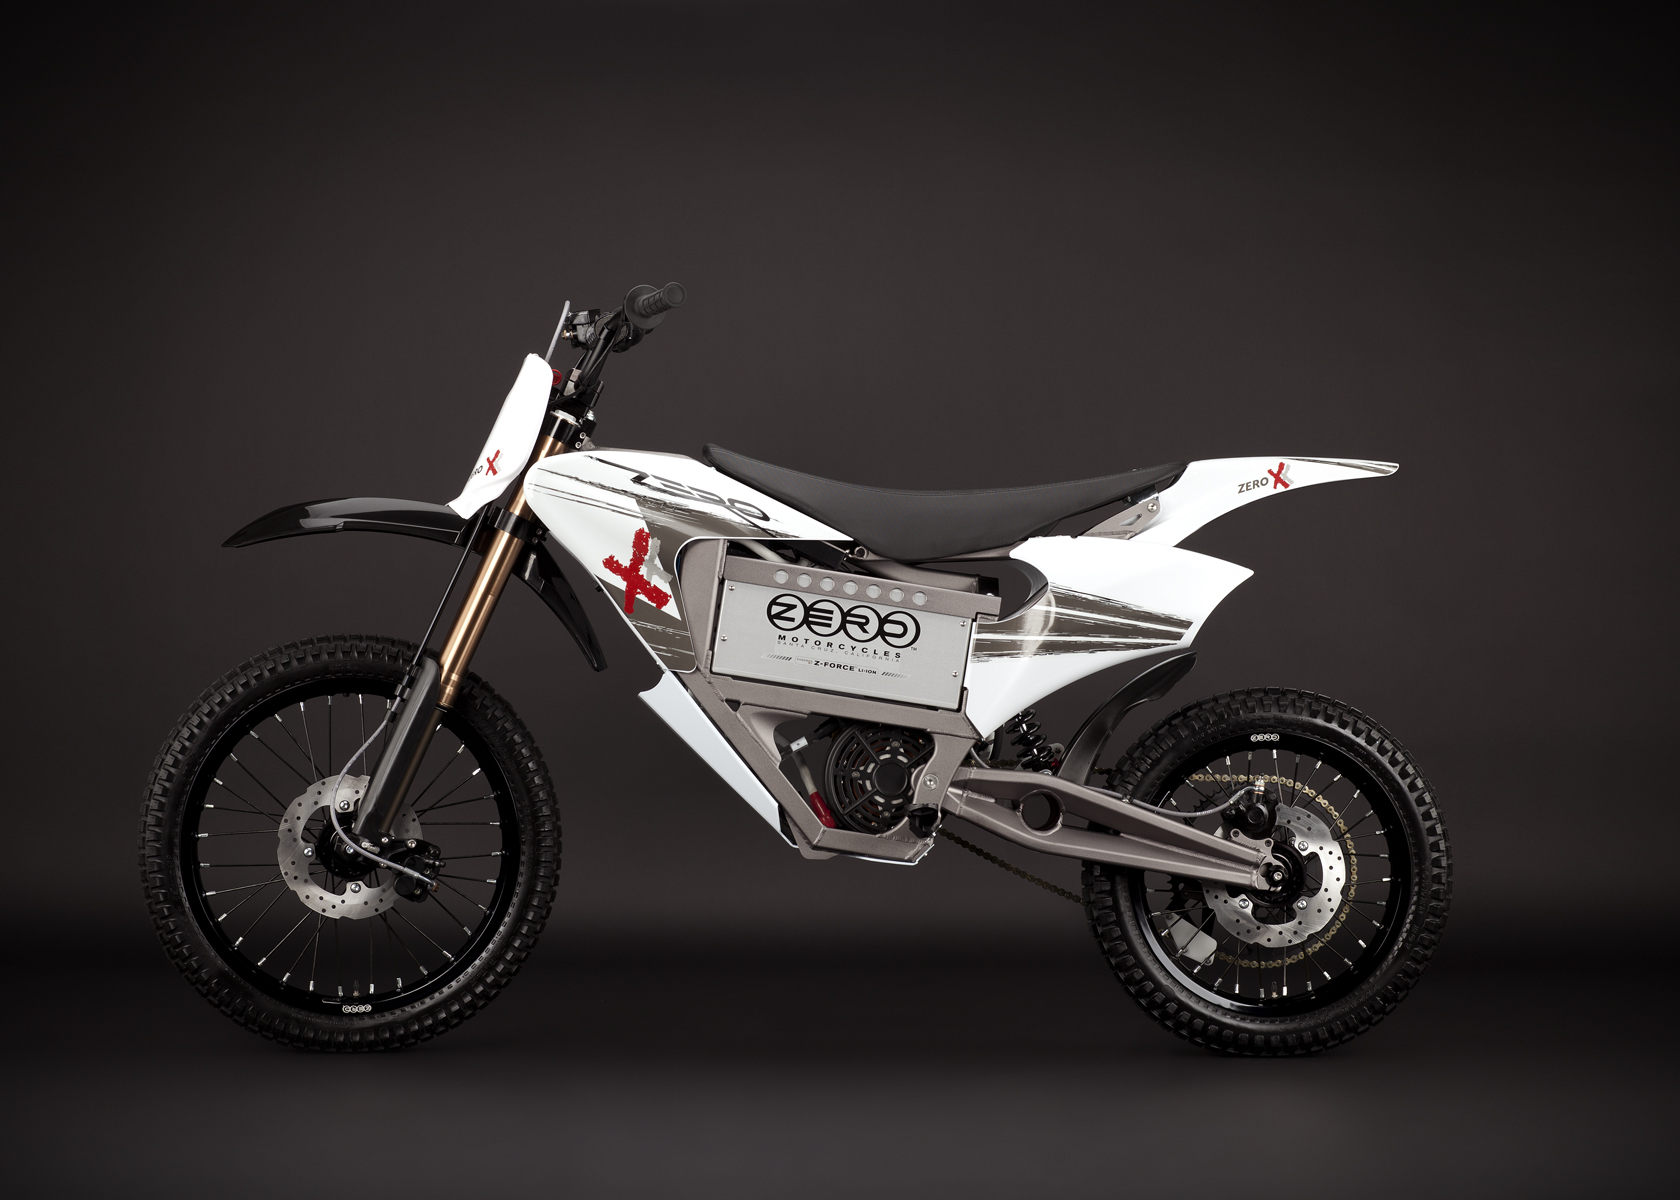 2011 Zero X Electric Motorcycle: Profile Left, Dirt Model